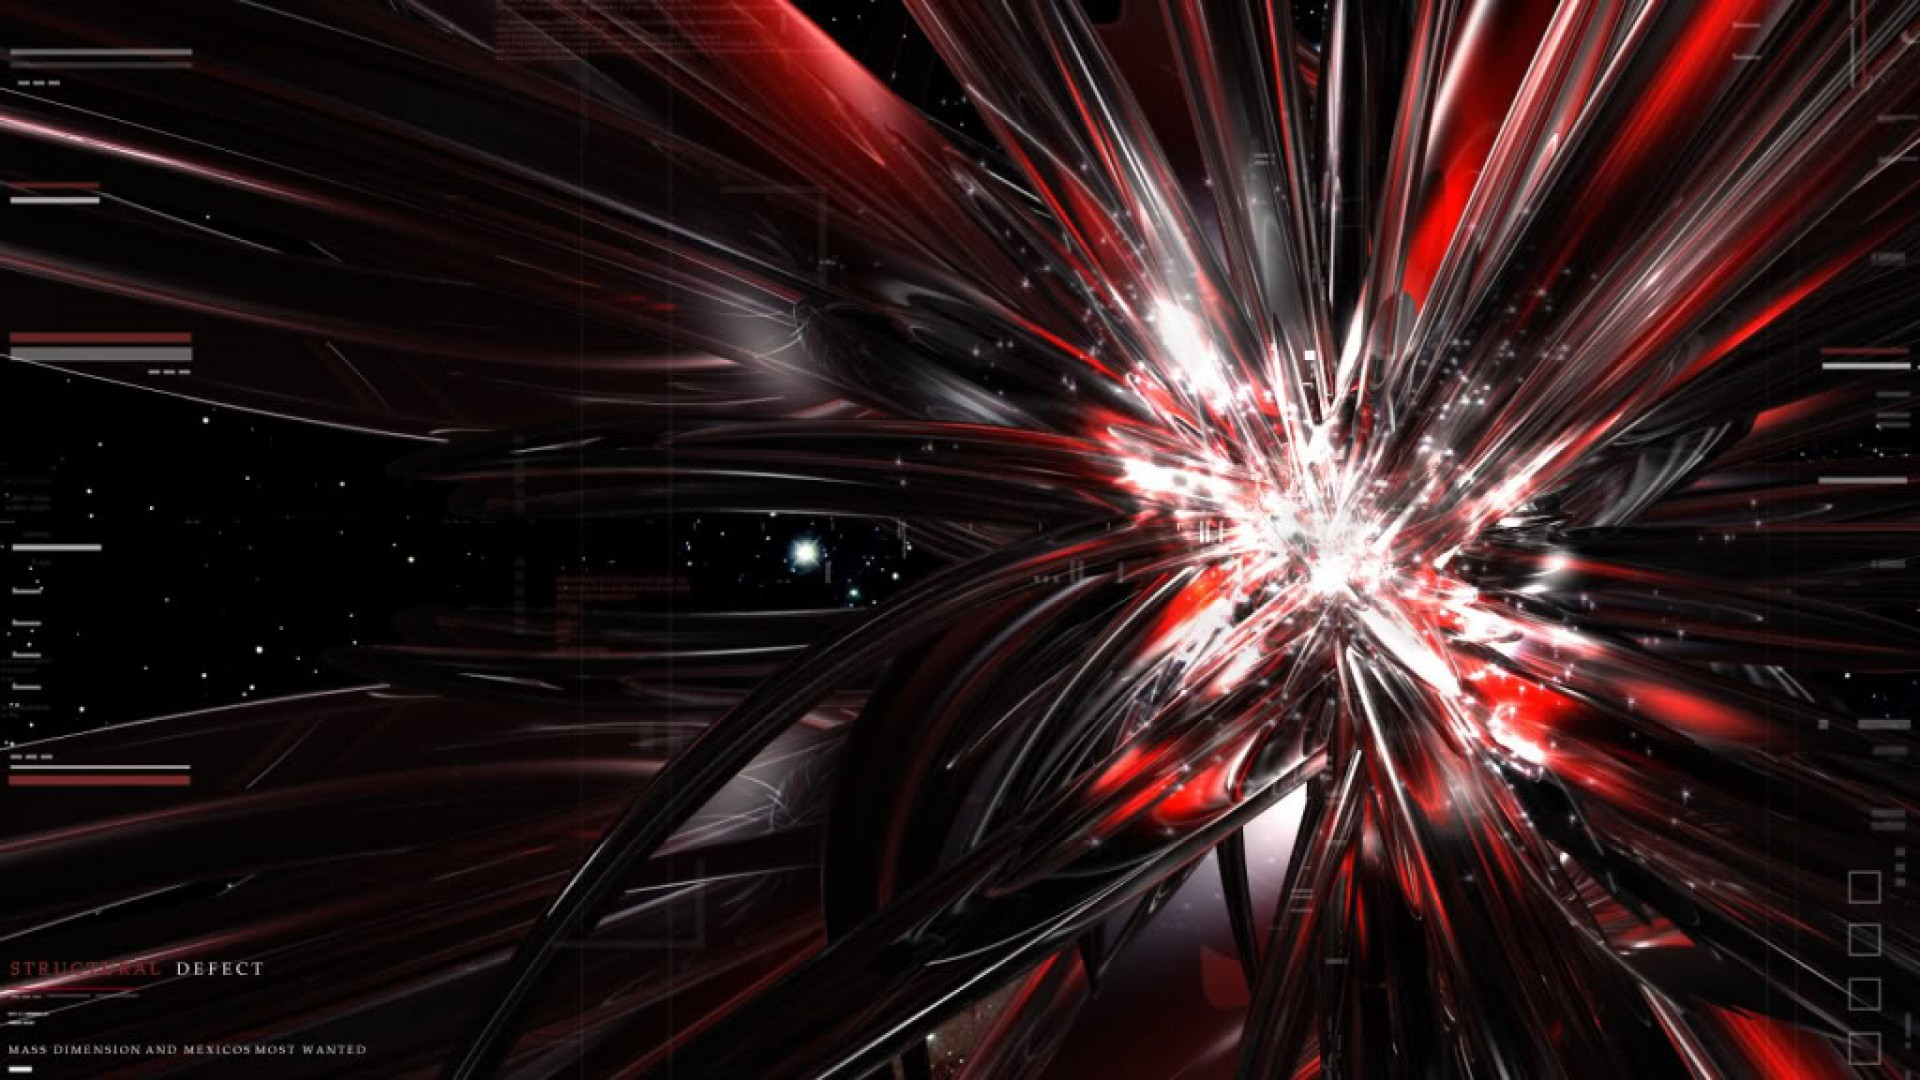 Red Black White Abstract Wallpaper (58+ images)